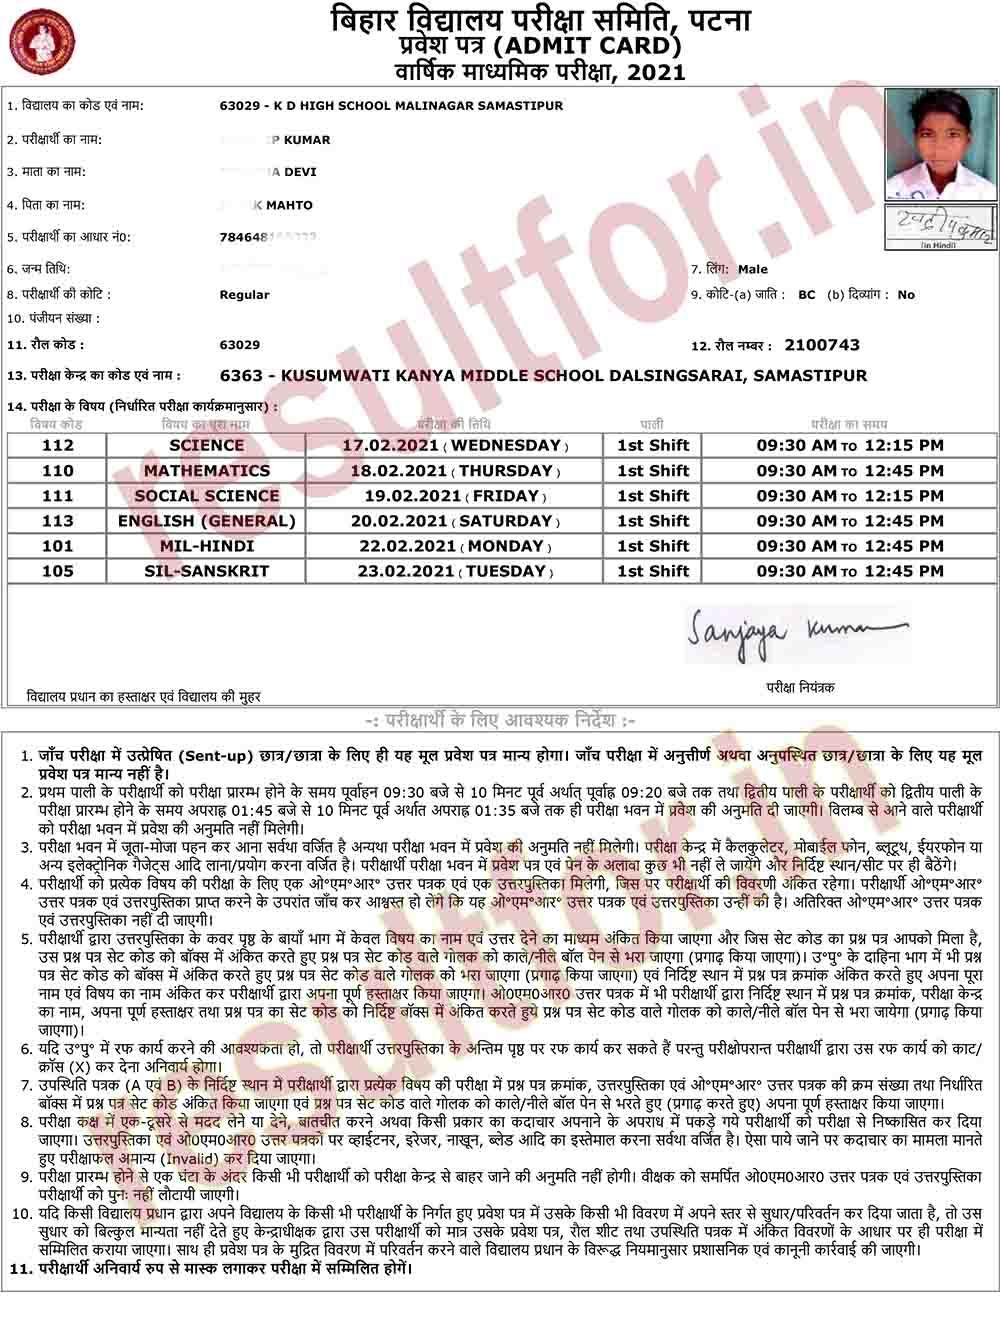 bihar board matric class 10th Admit Card